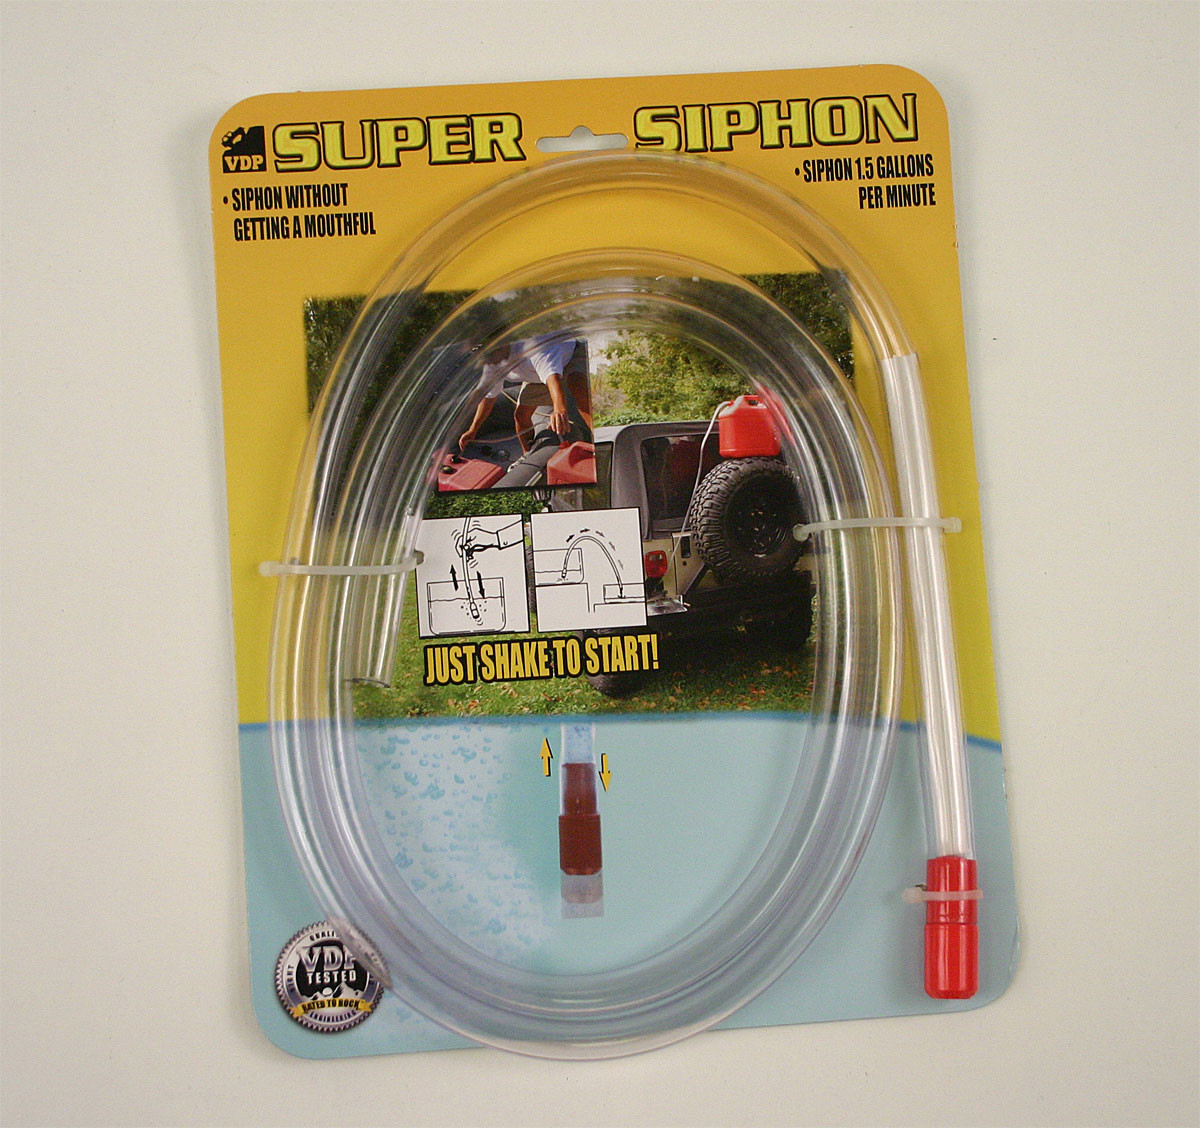 Super Siphon for transferring fuel or water